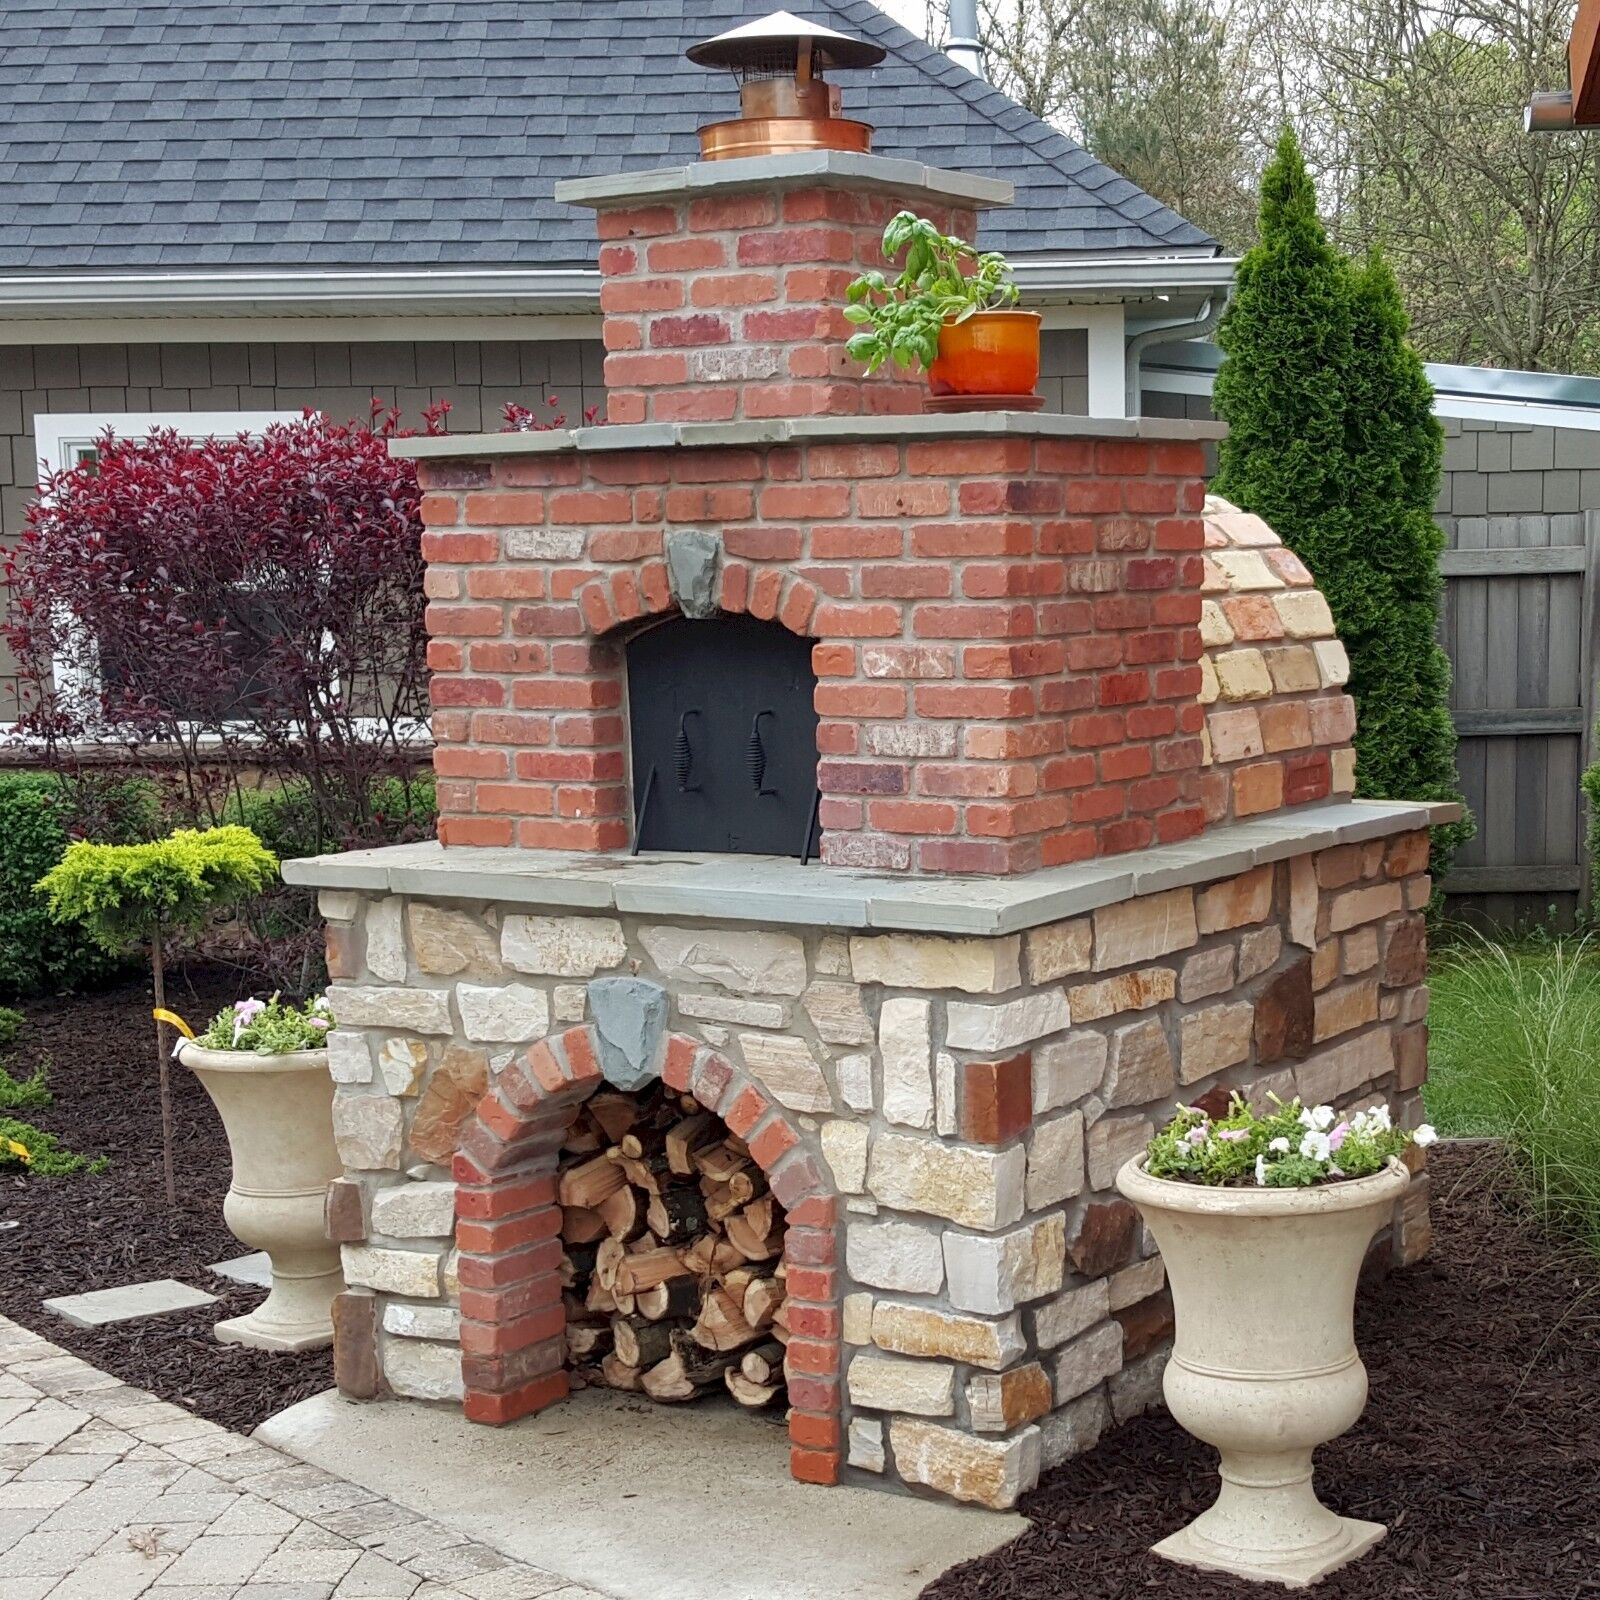 Brick Oven • Brick Pizza Oven - This IS America's BEST-SEL